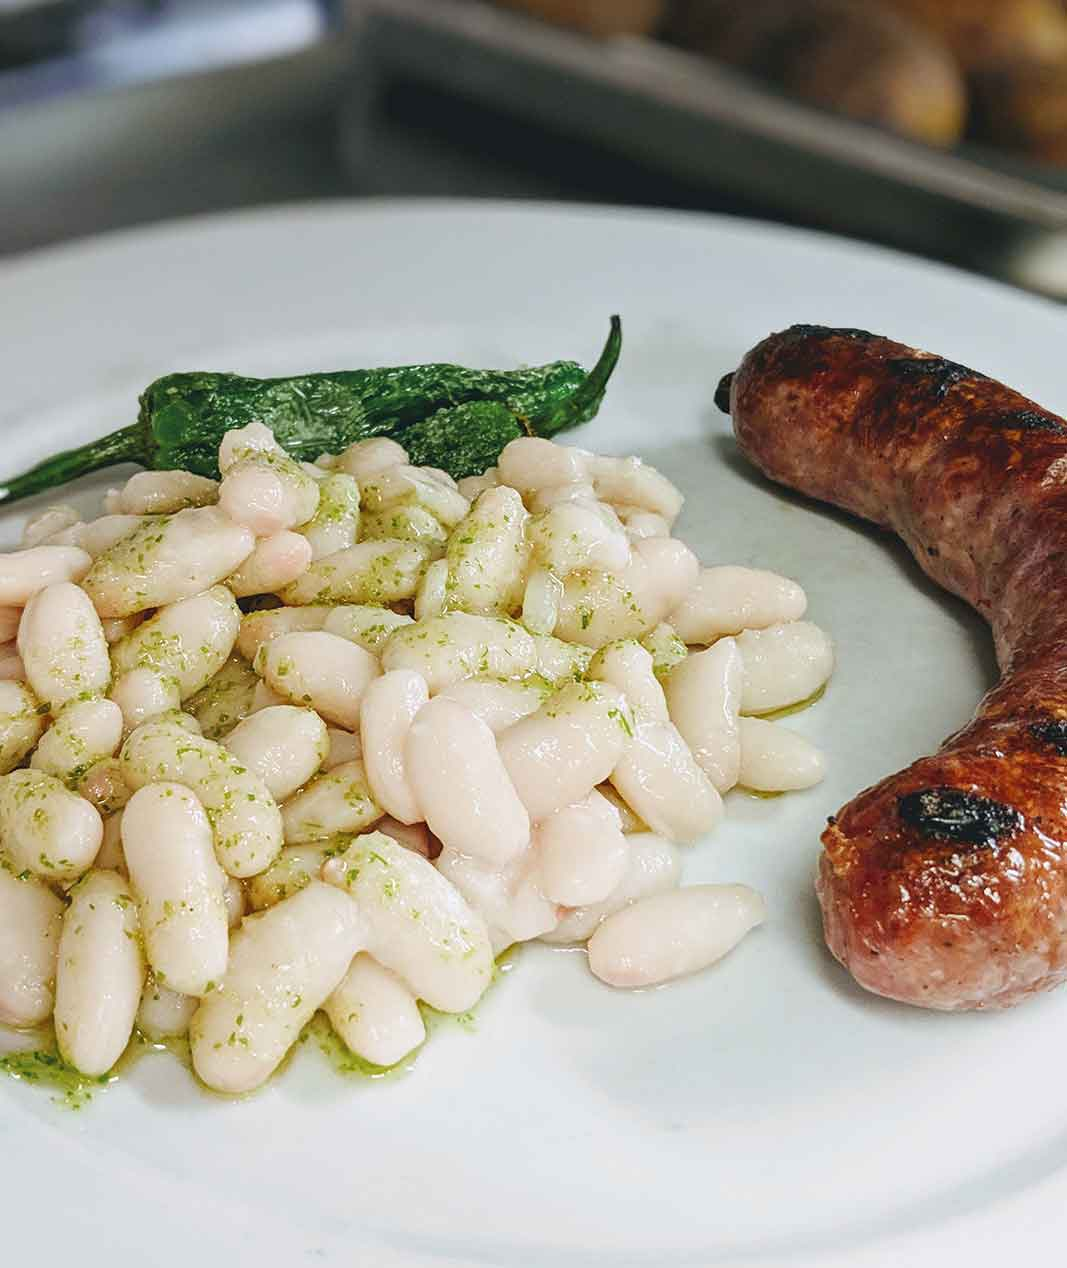 Botifarra (large Catalan pork sausage) with haricot beans